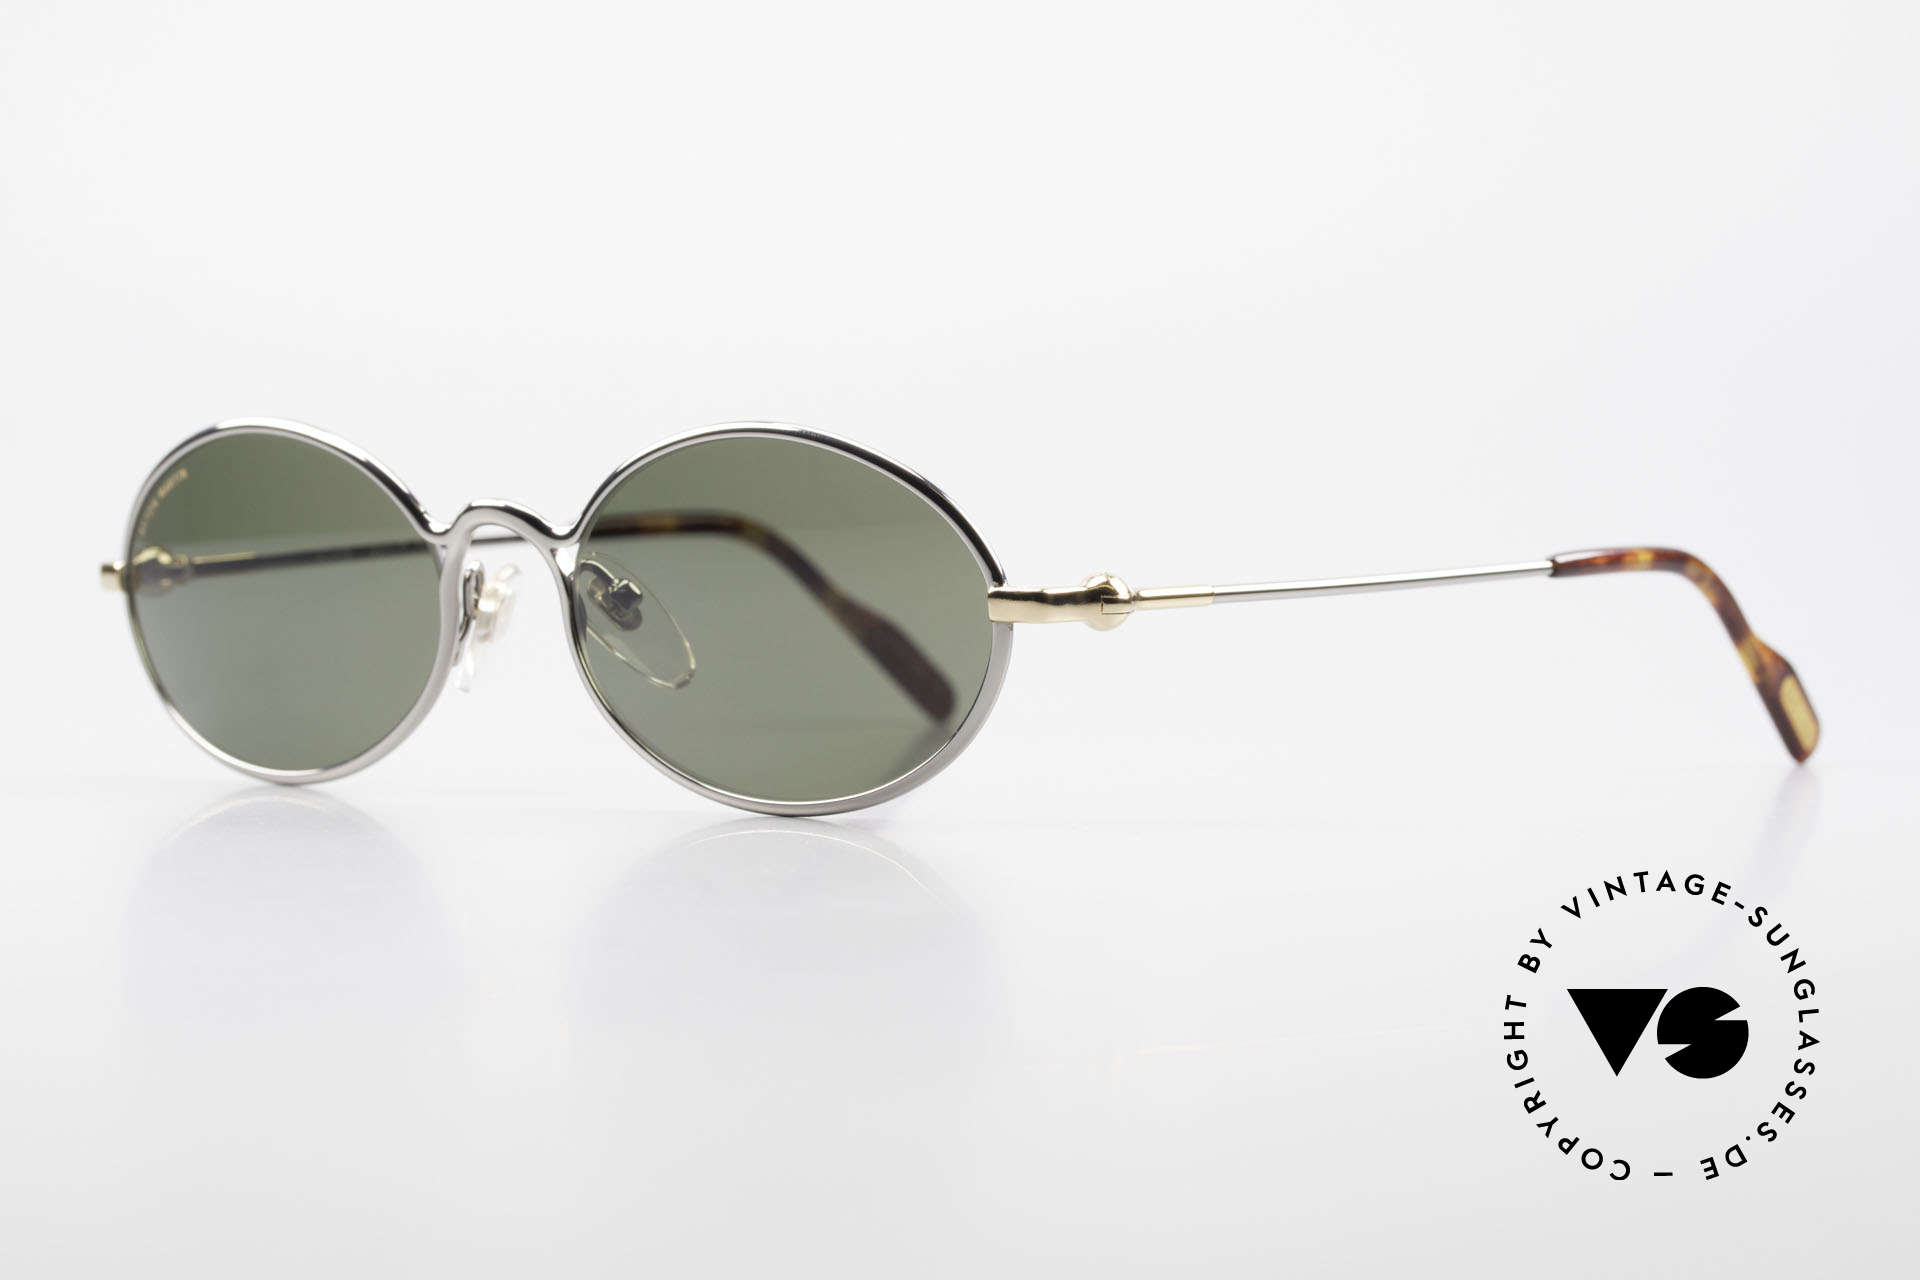 Aston Martin AM13 Oval Shades James Bond Style, sporty and elegant classic: James Bond 'gentlemen style', Made for Men